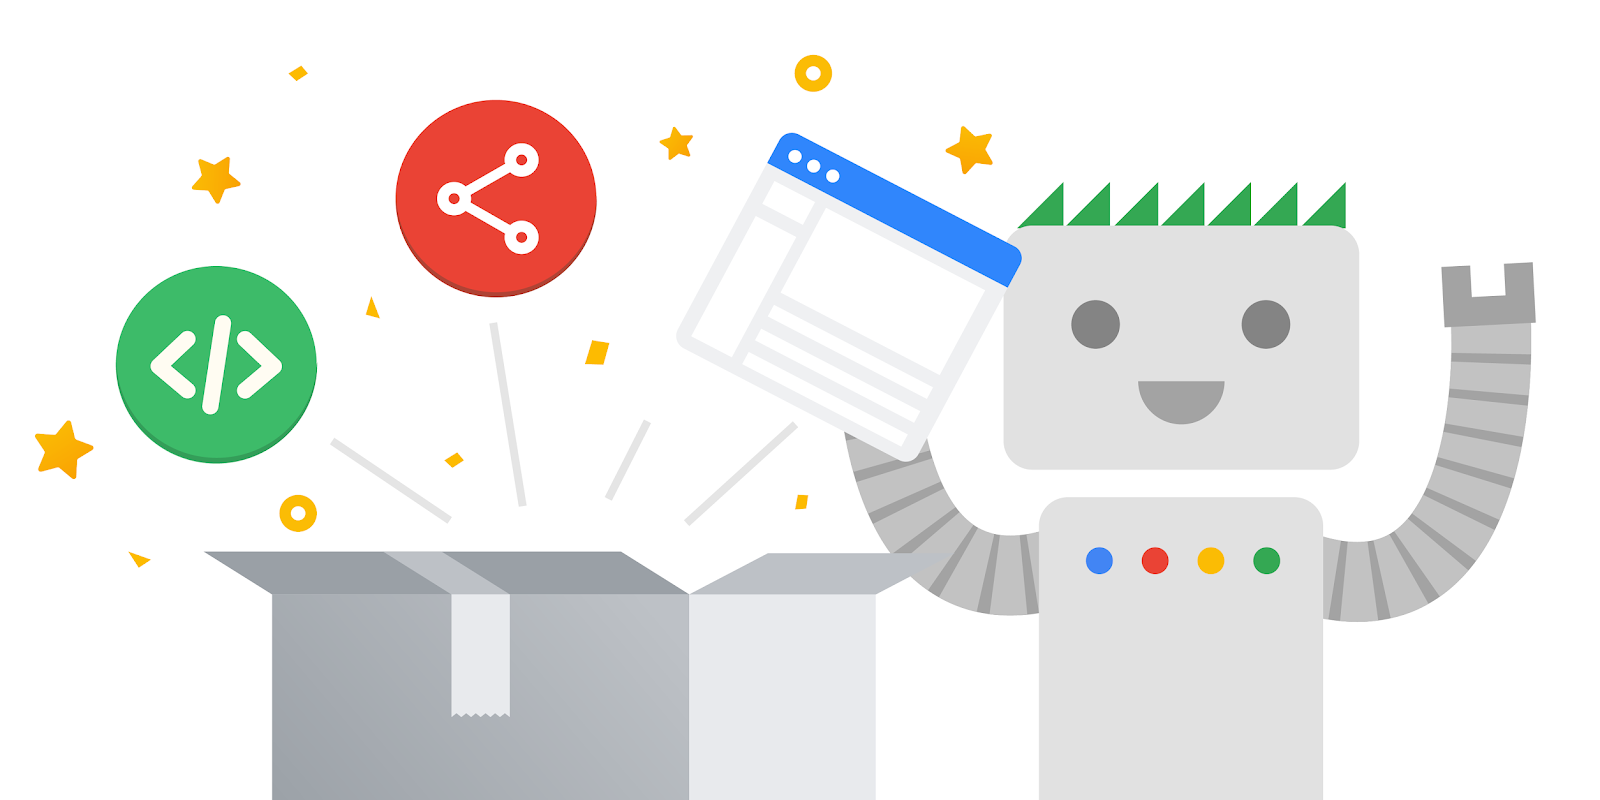 Google wants to make robots.txt an Internet standard - 9to5Google